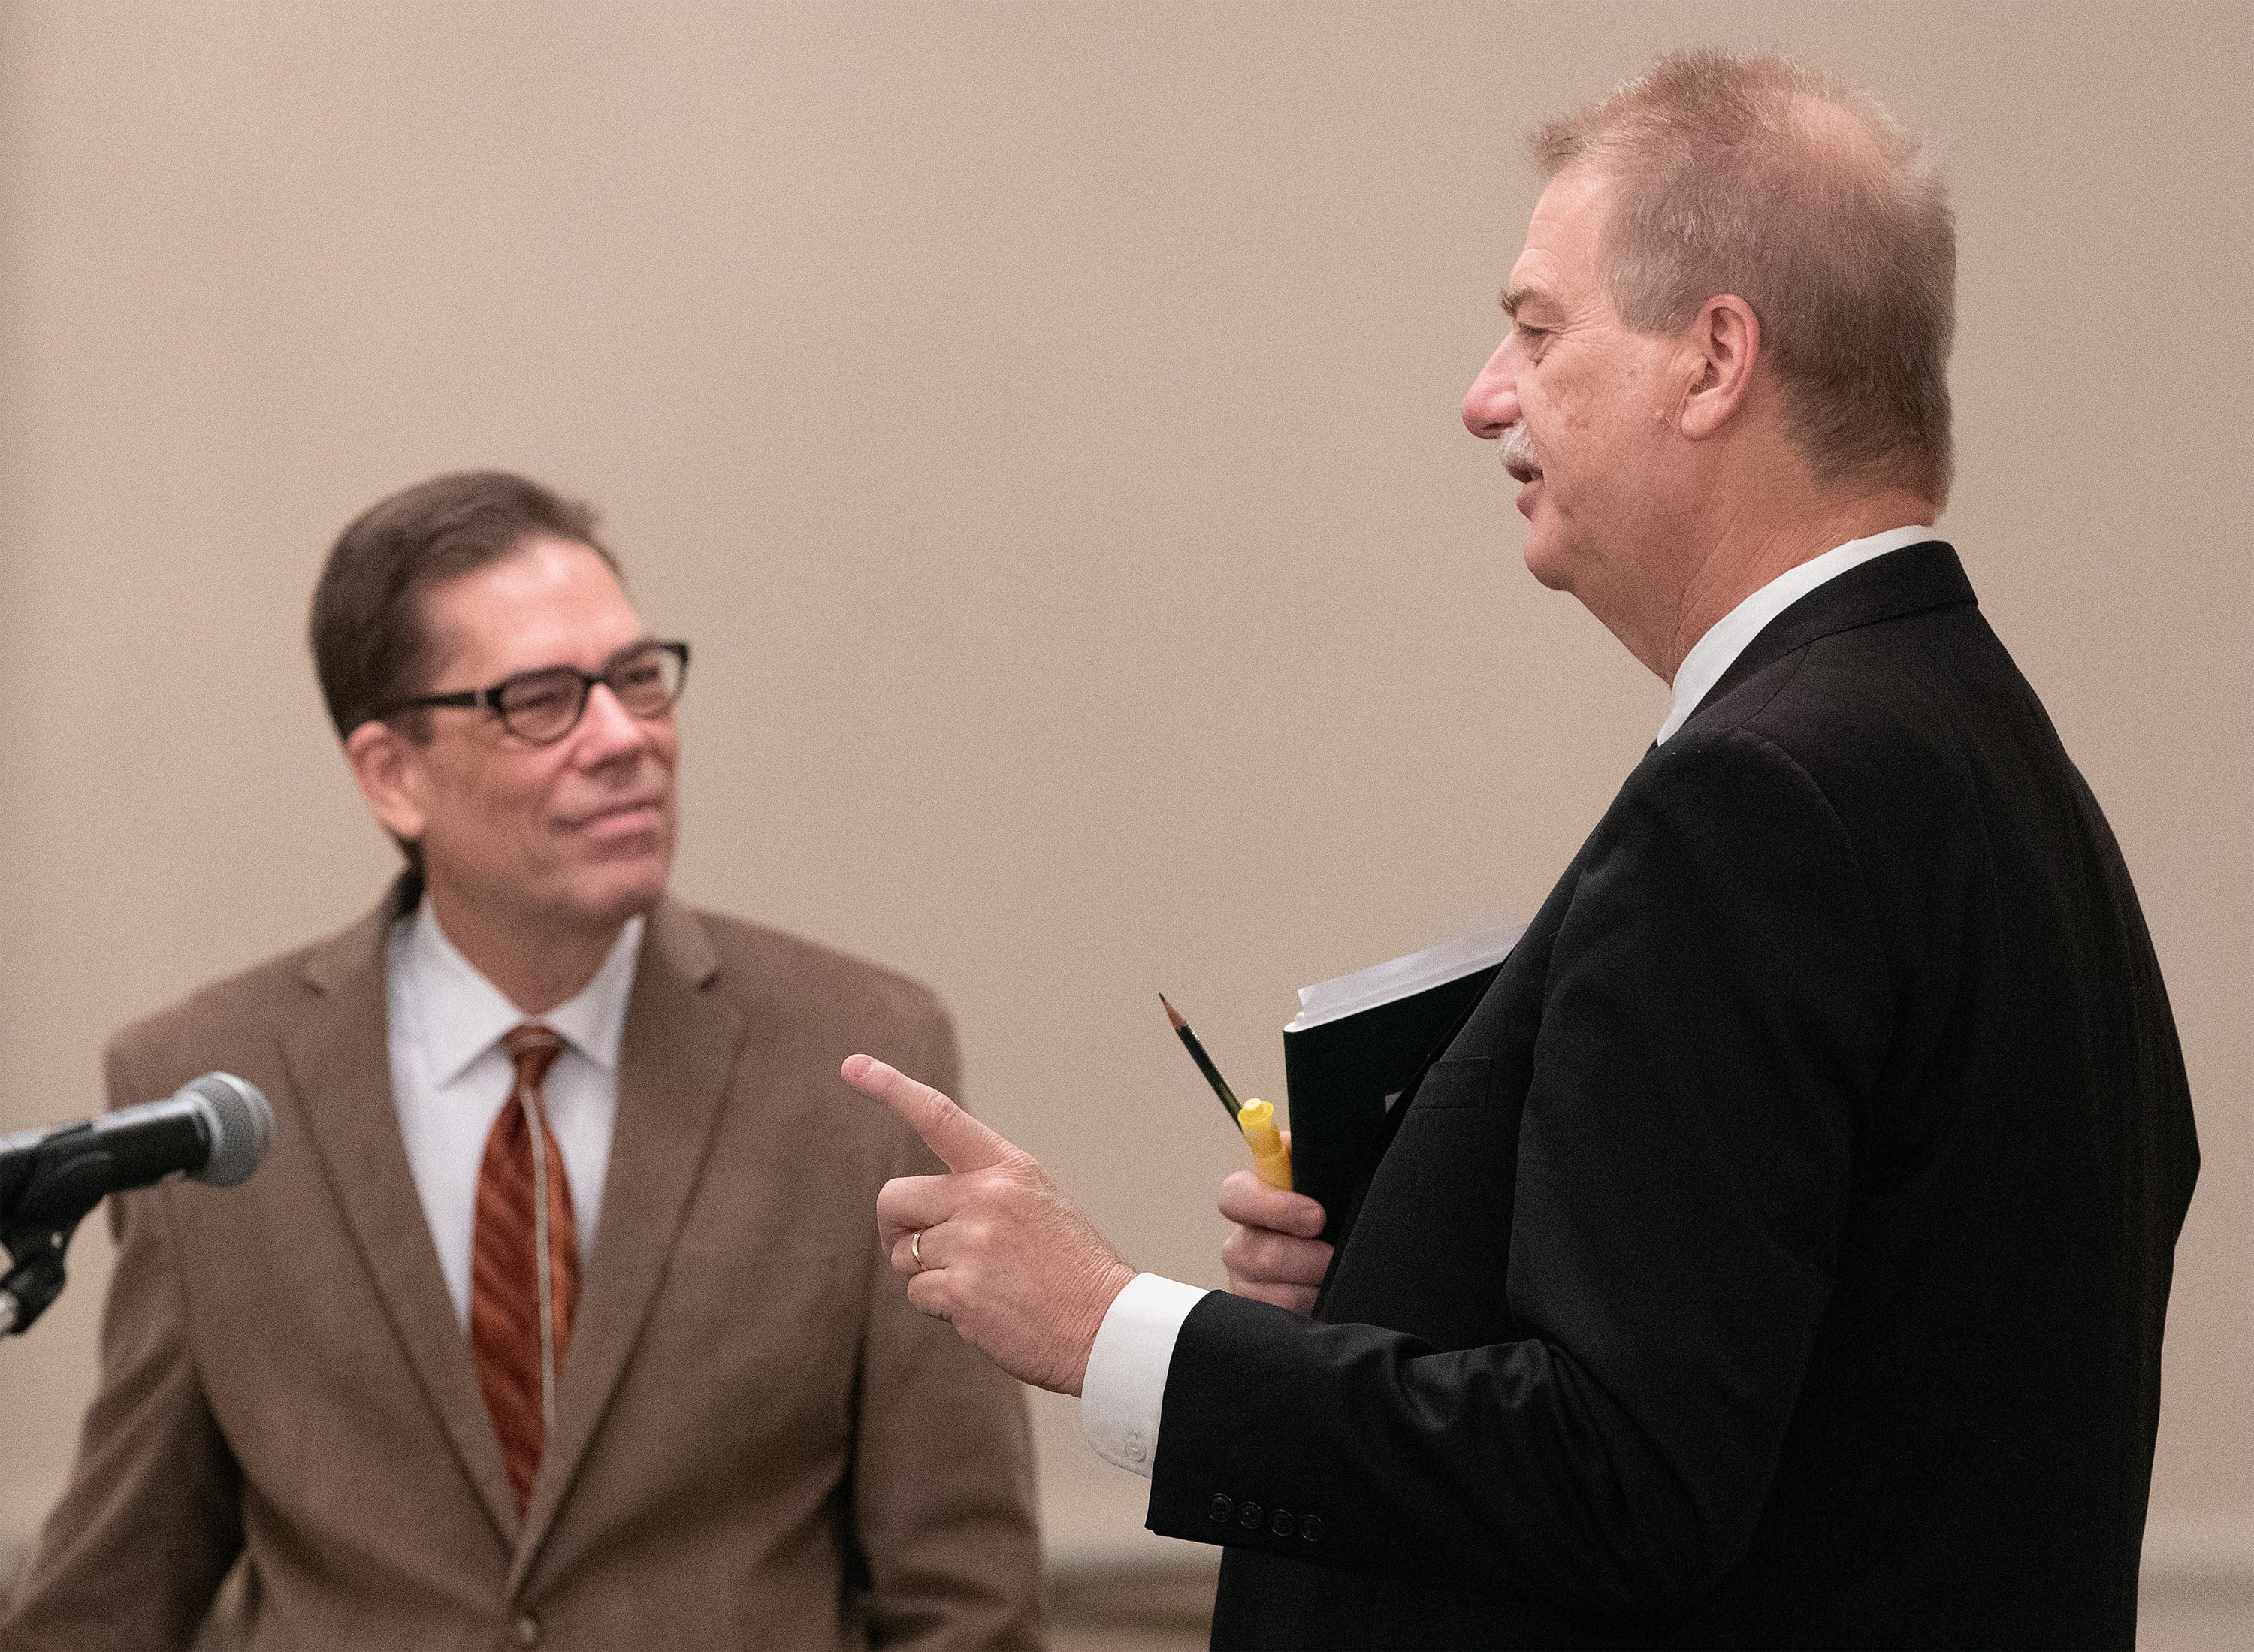 The Rev. Tom Lambrecht (left) and Bishop Kenneth H. Carter visit prior to the start of oral hearings before the United Methodist Judicial Council meeting in Evanston, Ill. Lambrecht is vice president and general manager of Good News and a member of the Wesleyan Covenant Association leadership. Carter is president of the denomination's Council of Bishops. Photo by Mike DuBose, UM News.